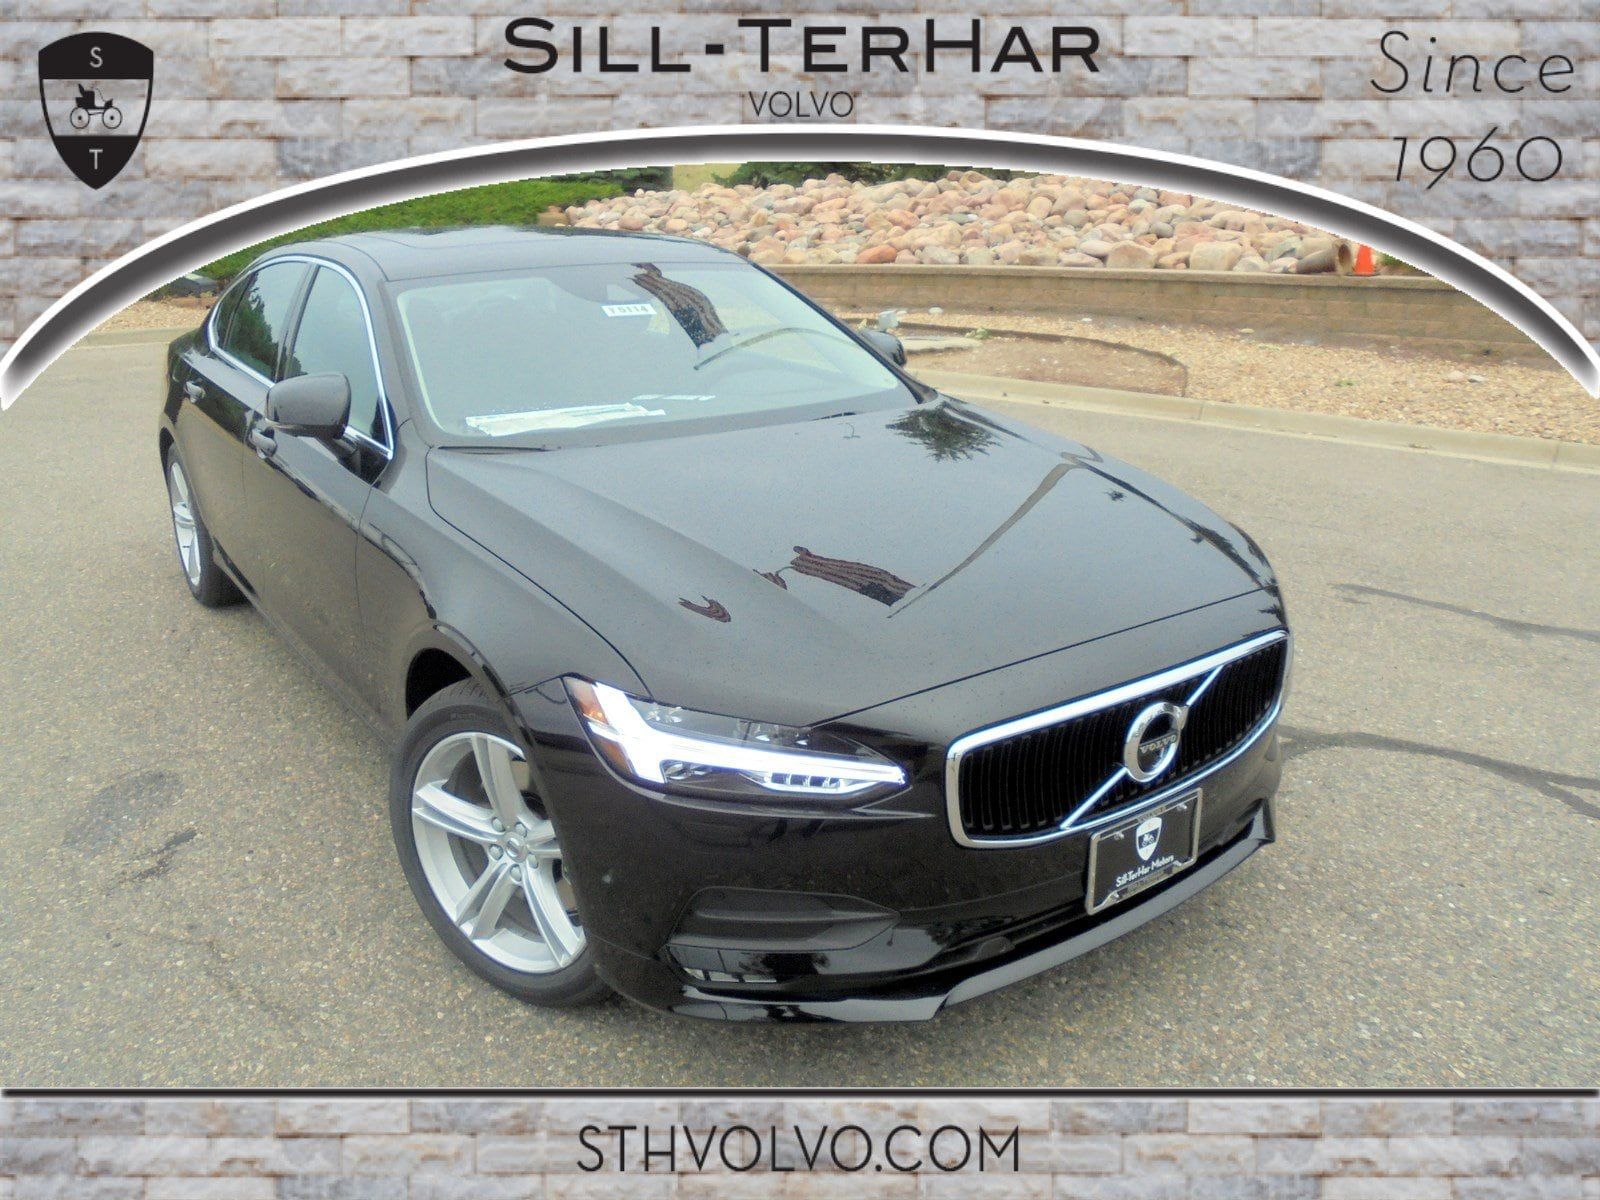 new featured vehicles sill terhar volvo cars. Black Bedroom Furniture Sets. Home Design Ideas